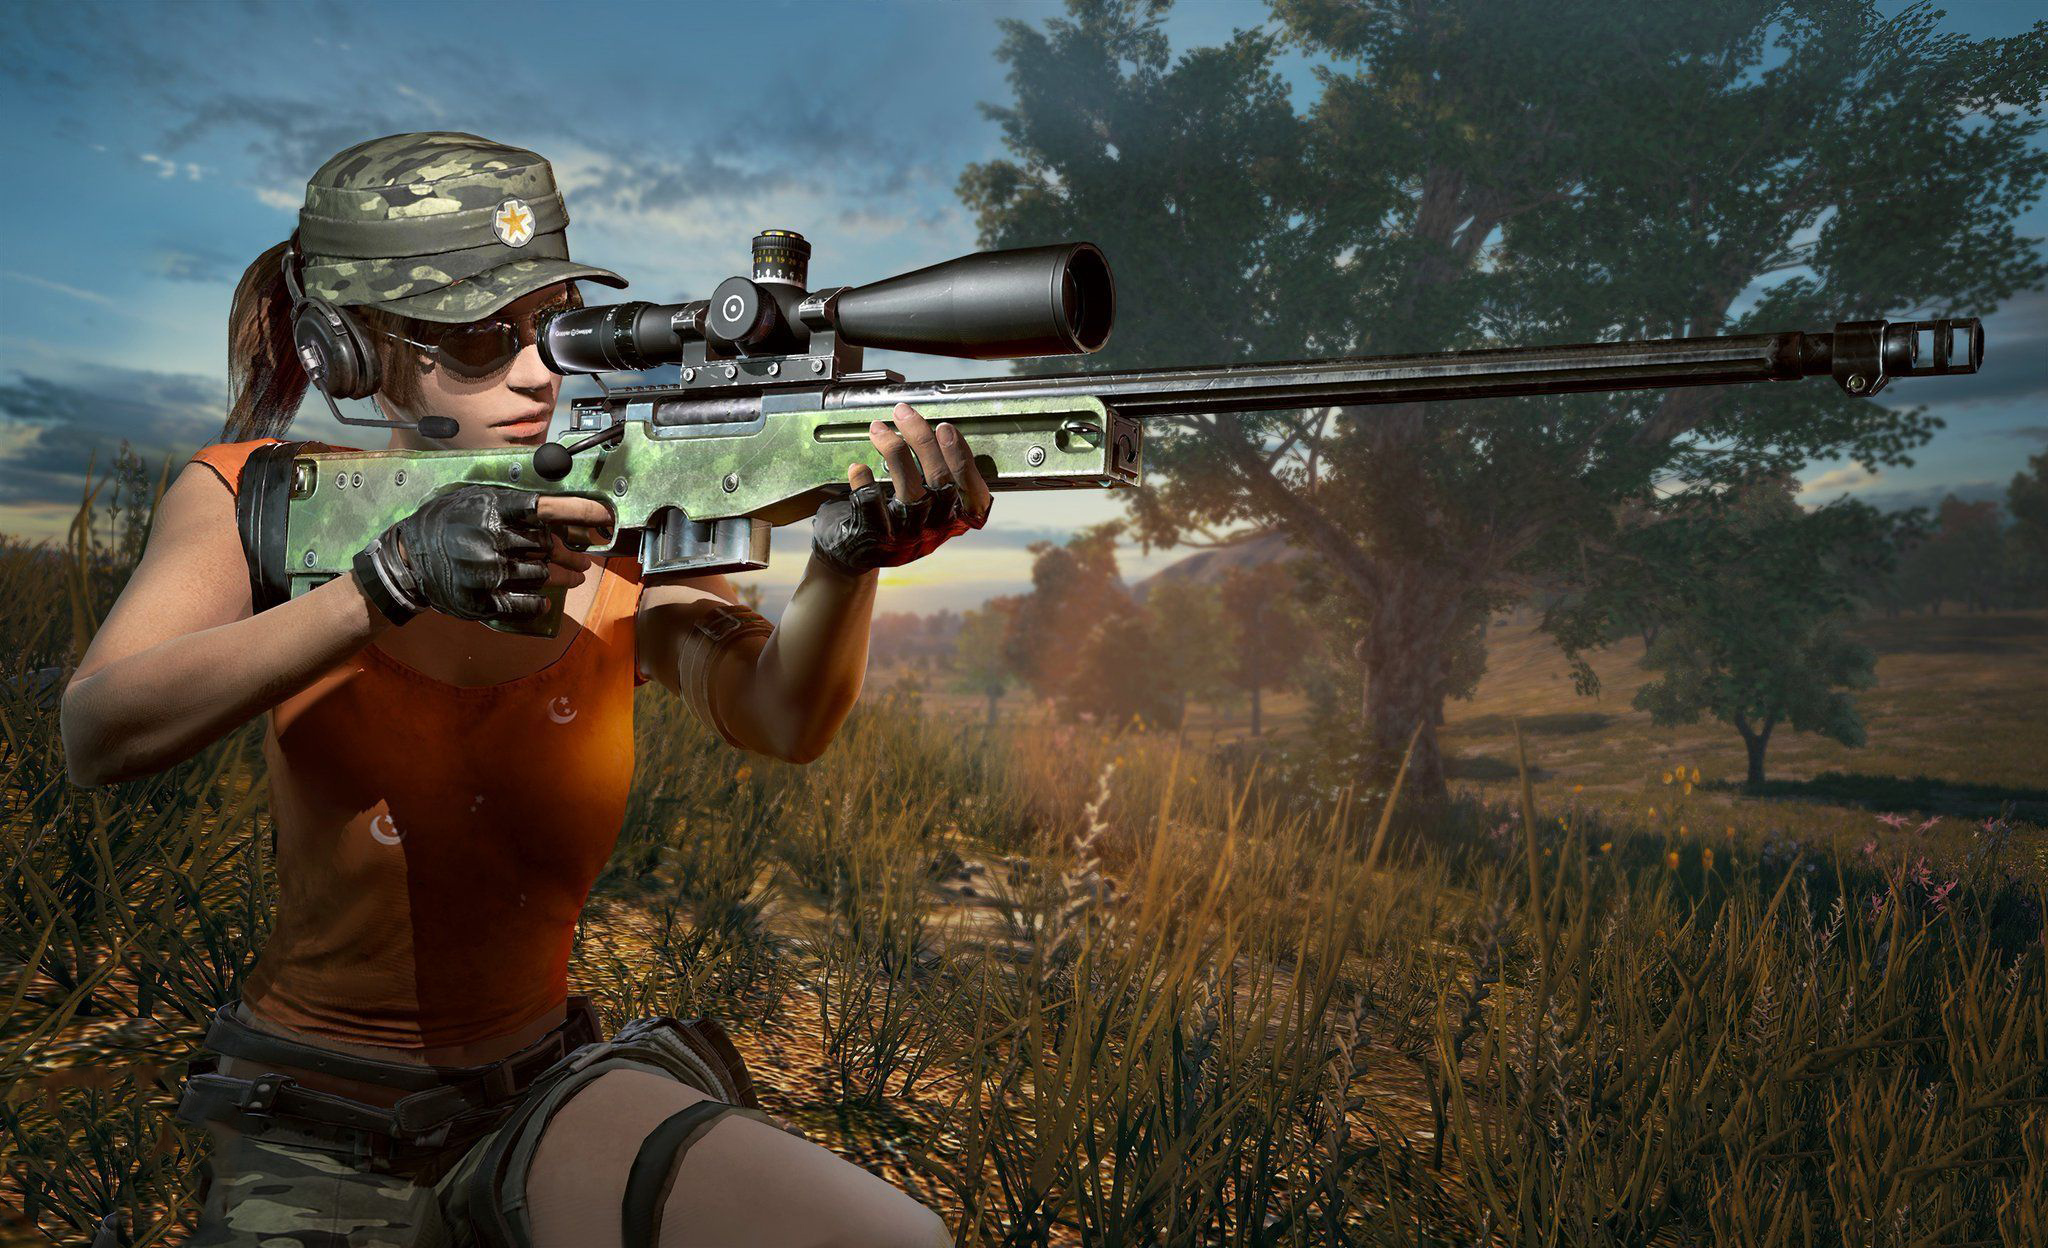 2560x1080 2018 Playerunknowns Battlegrounds 2560x1080: Pubg Girl 2018, HD Games, 4k Wallpapers, Images